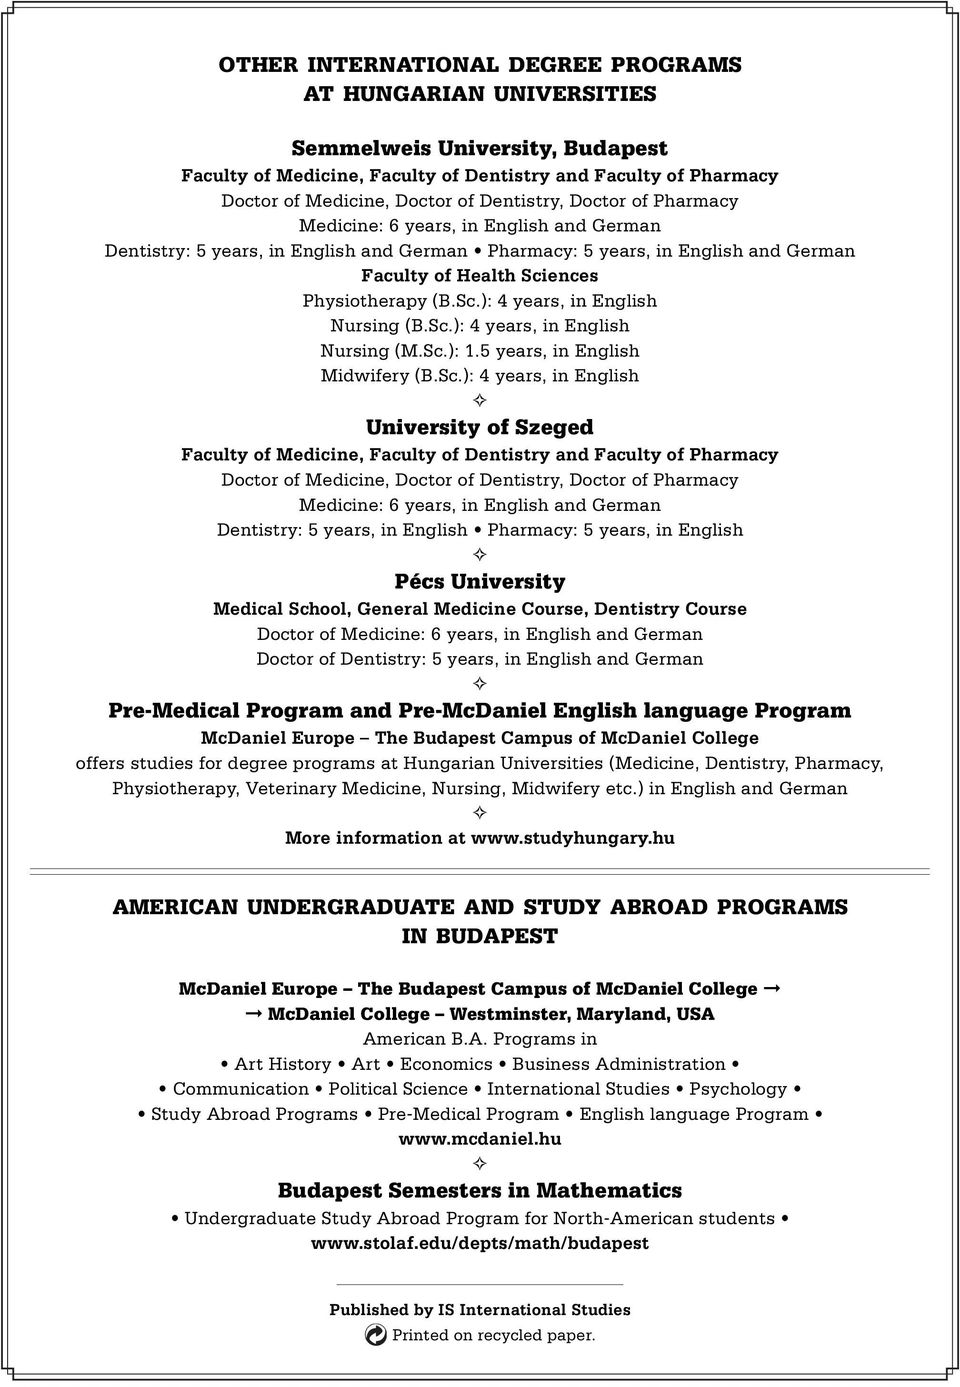 Sc.): 4 years, in English Nursing (B.Sc.): 4 years, in English Nursing (M.Sc.): 1.5 years, in English Midwifery (B.Sc.): 4 years, in English University of Szeged Faculty of Medicine, Faculty of